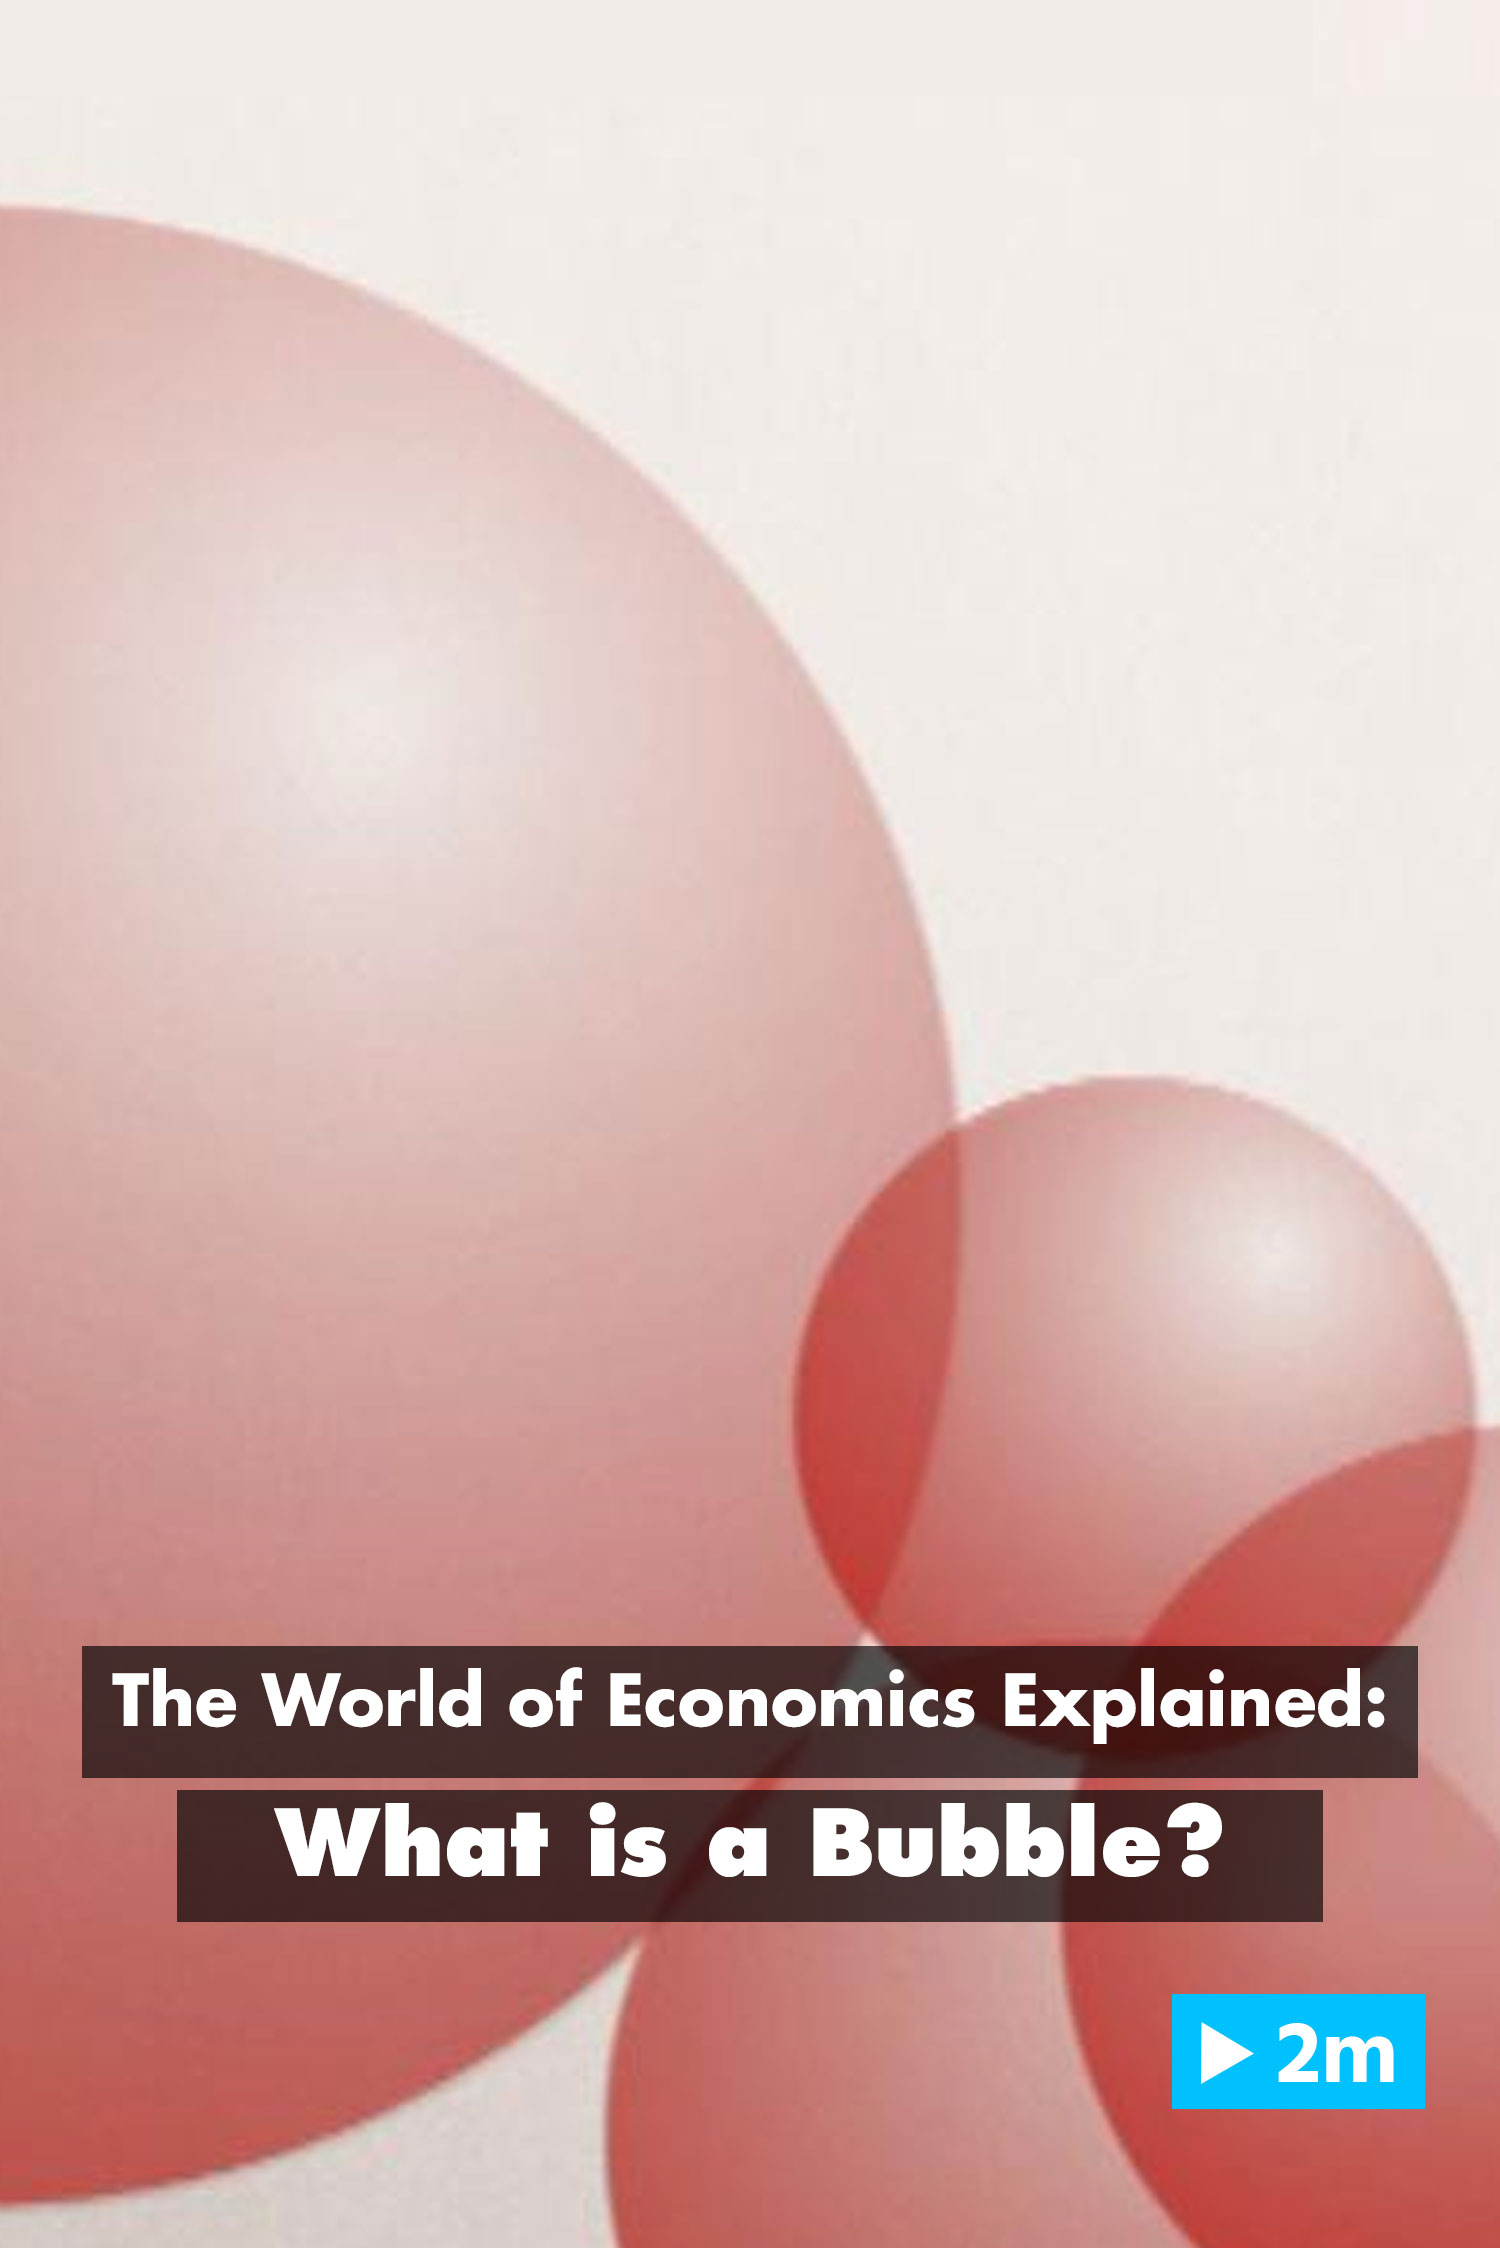 The World of Economics Explained: What is a bubble?